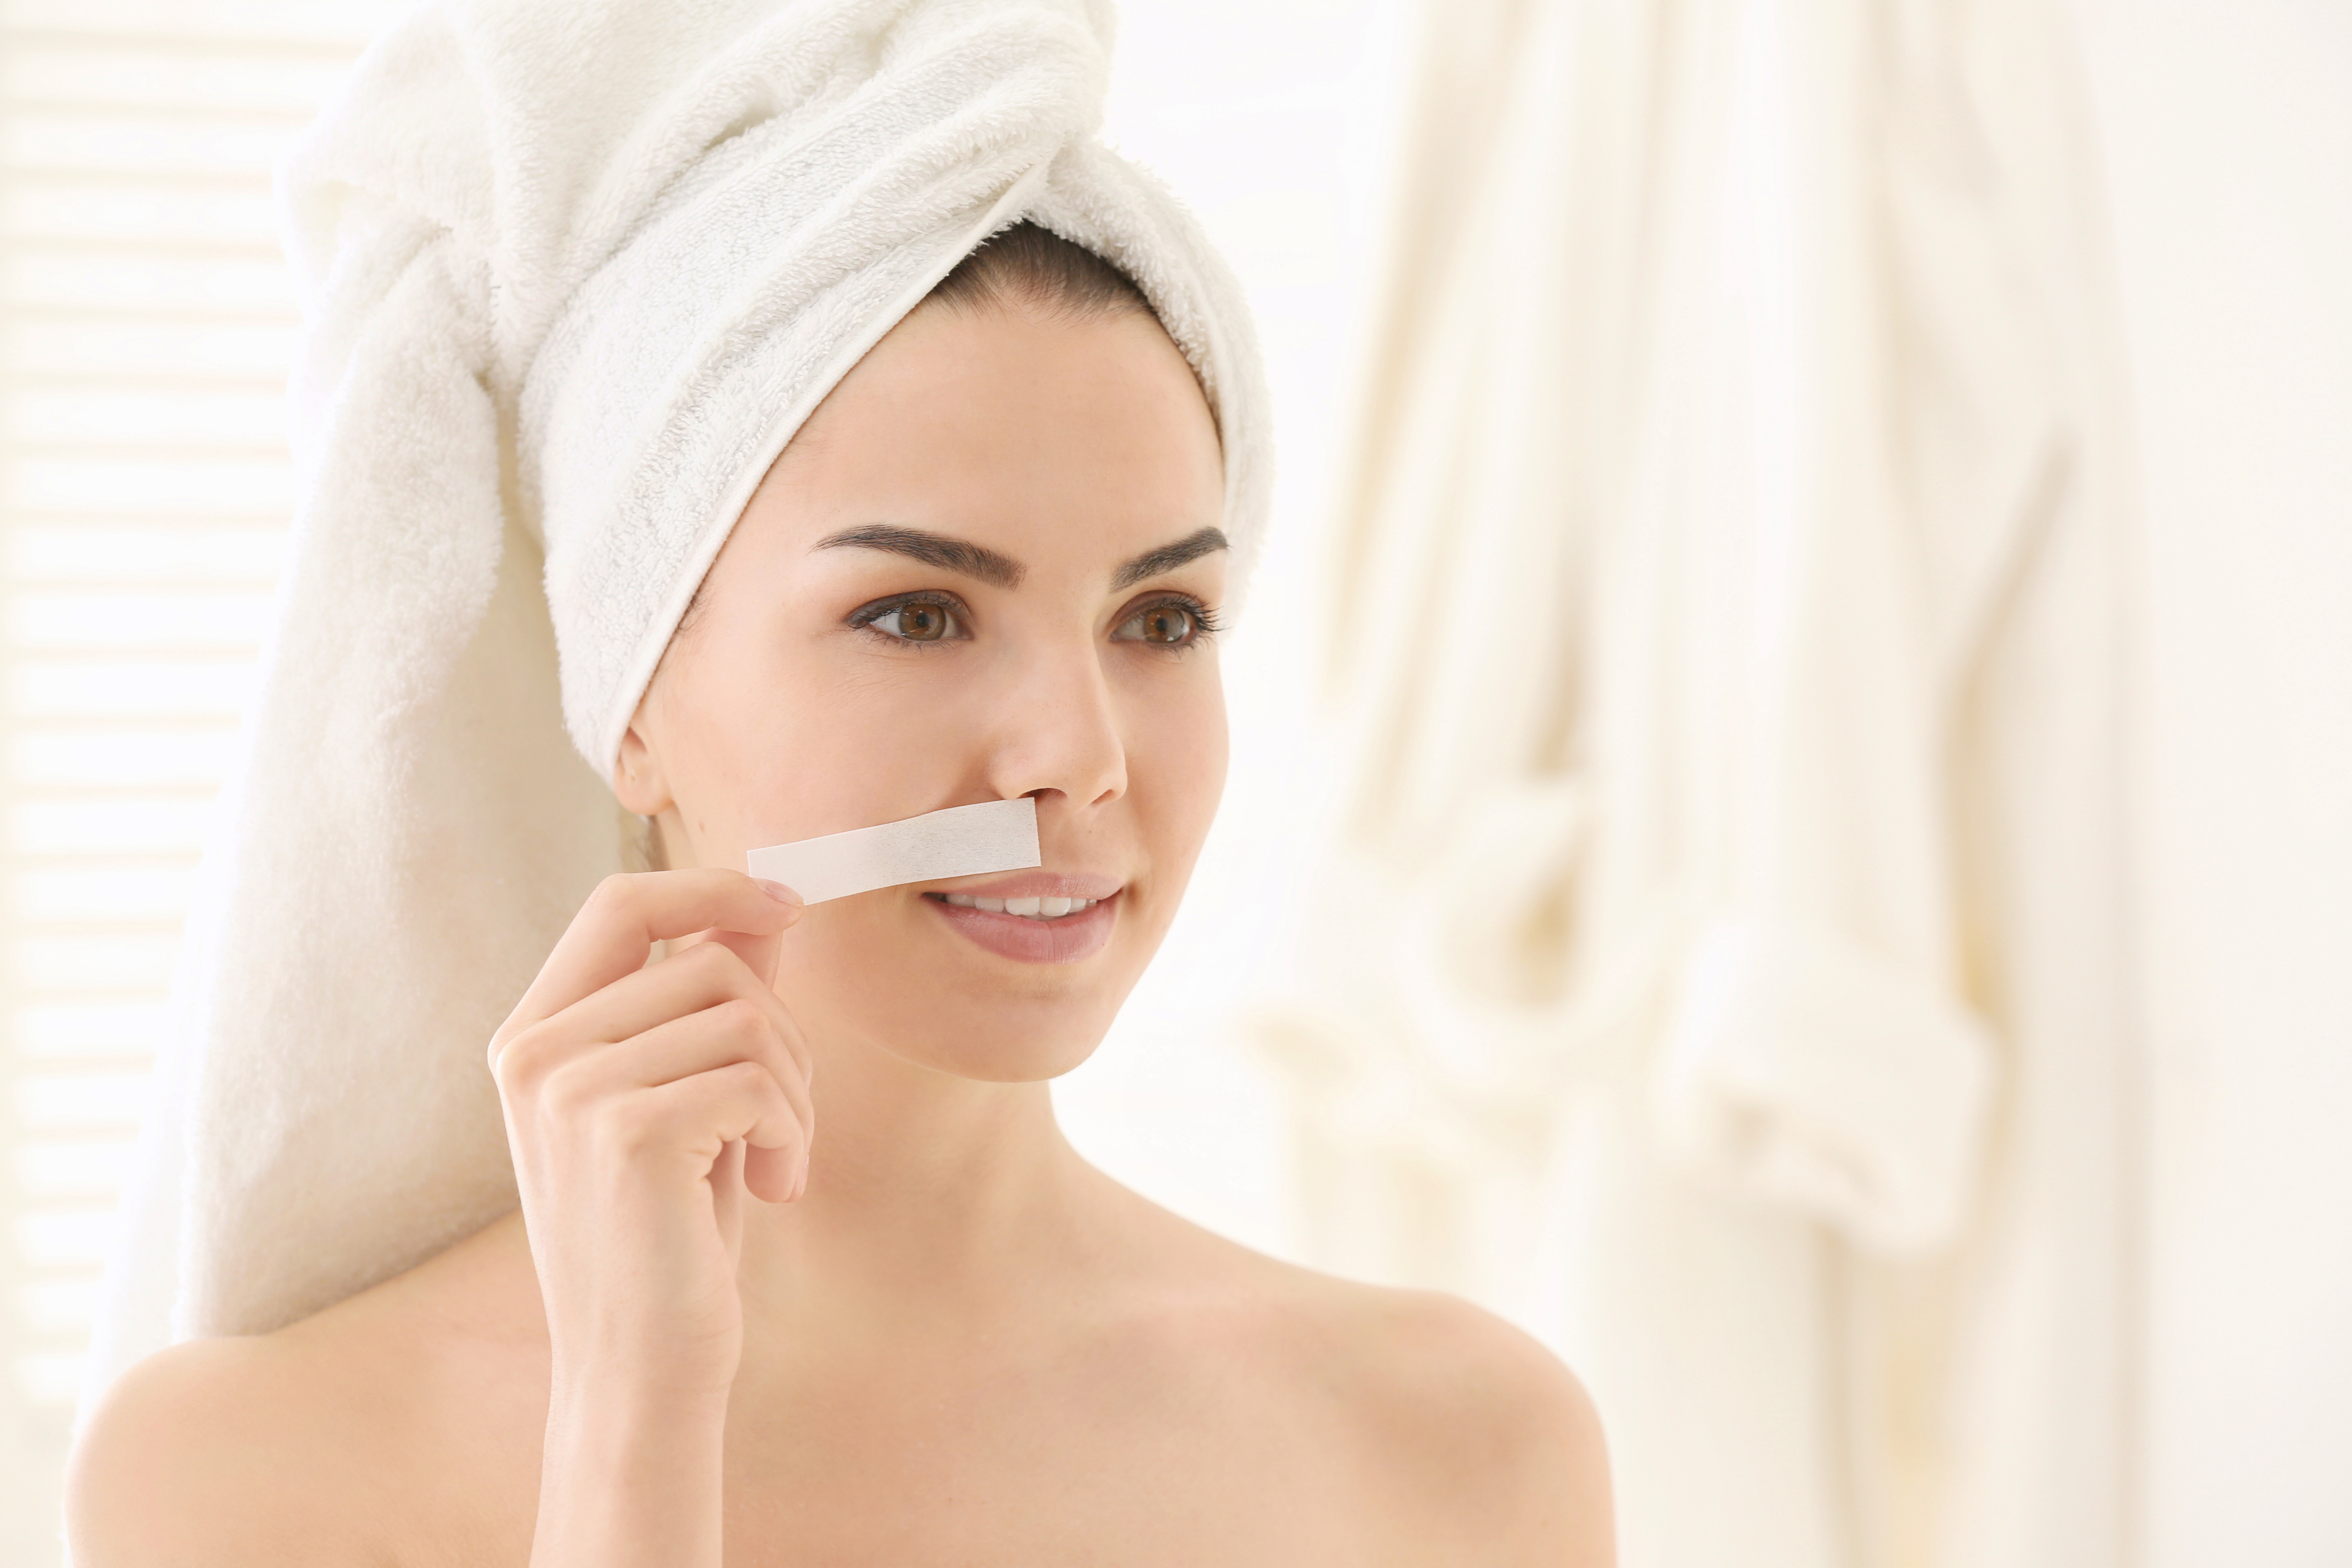 Cosmetics causing unwanted facial hair growth